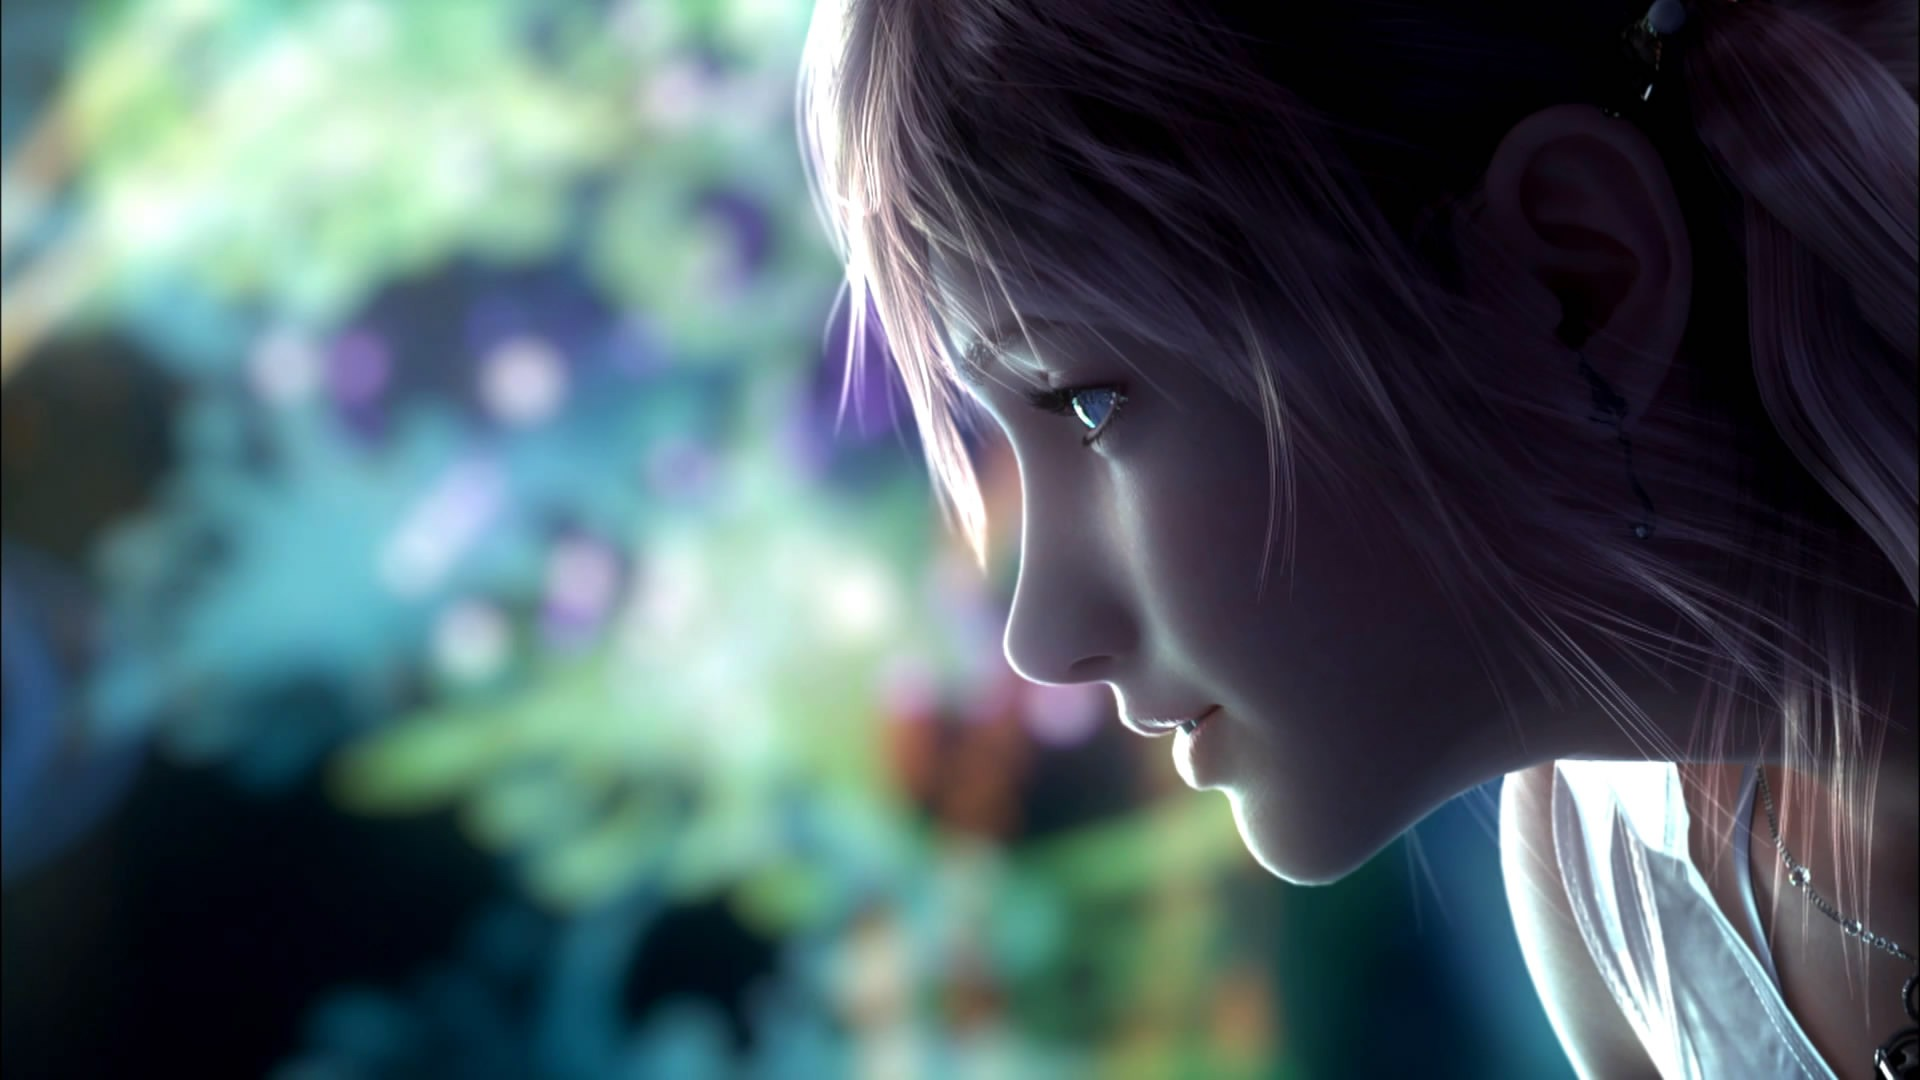 final fantasy hd A3